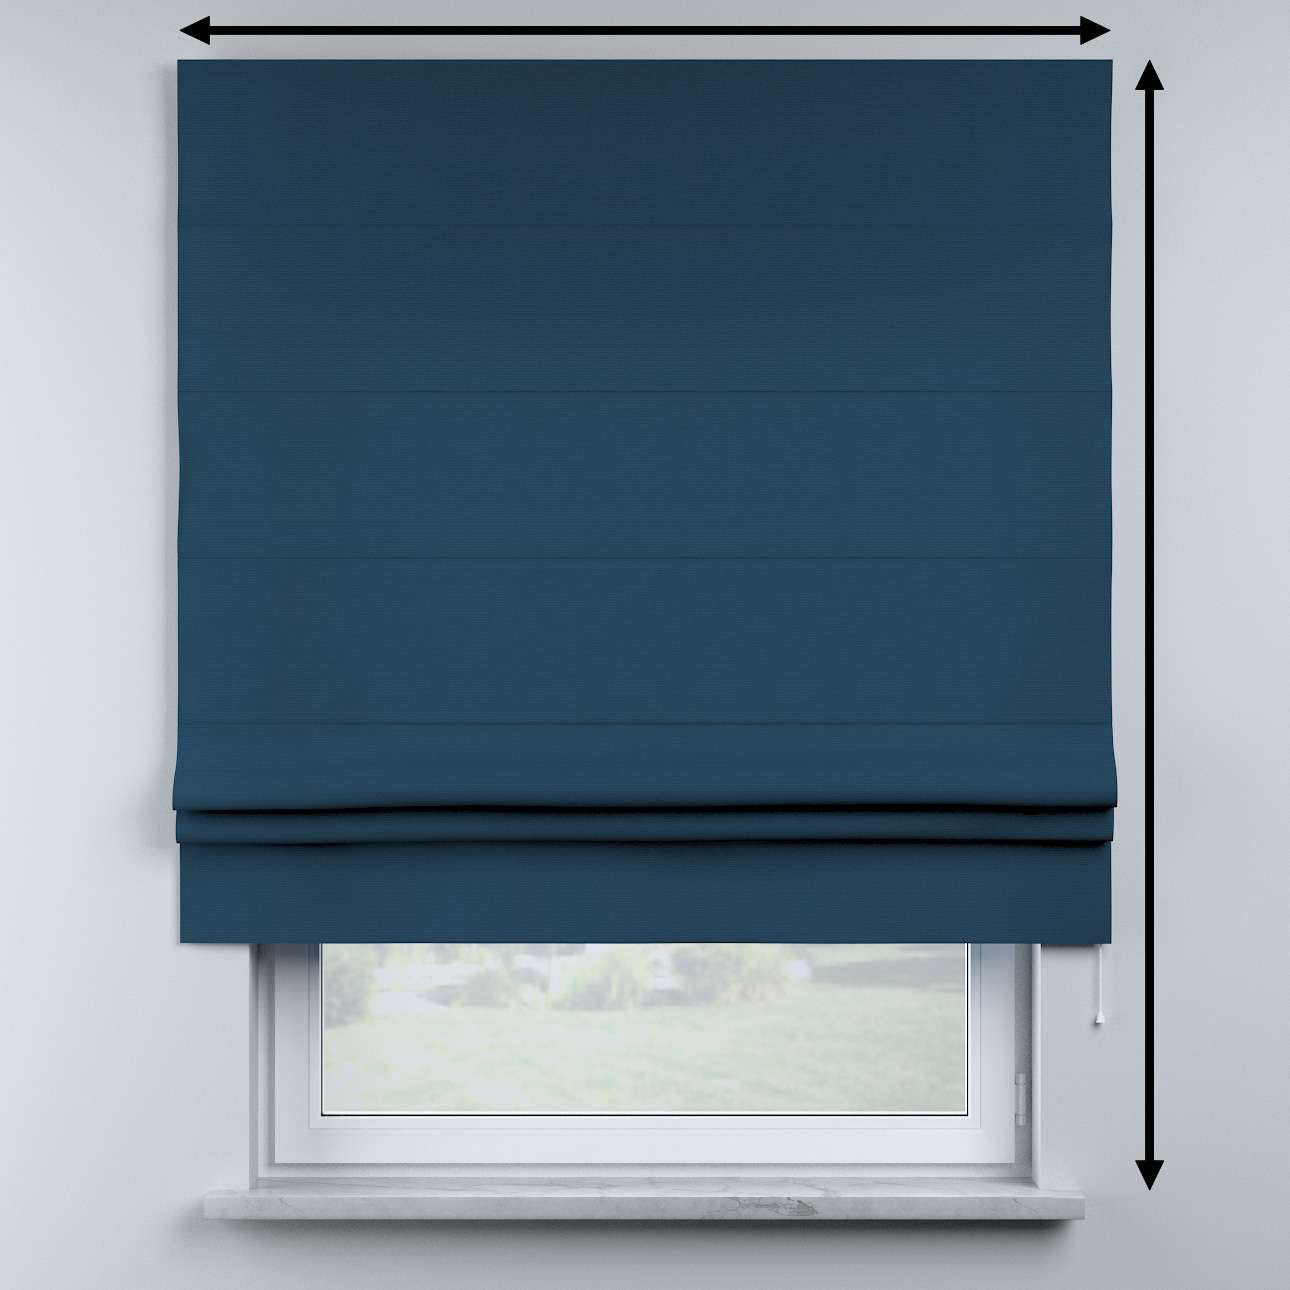 Sammy roman blind in collection Cotton Story, fabric: 702-30